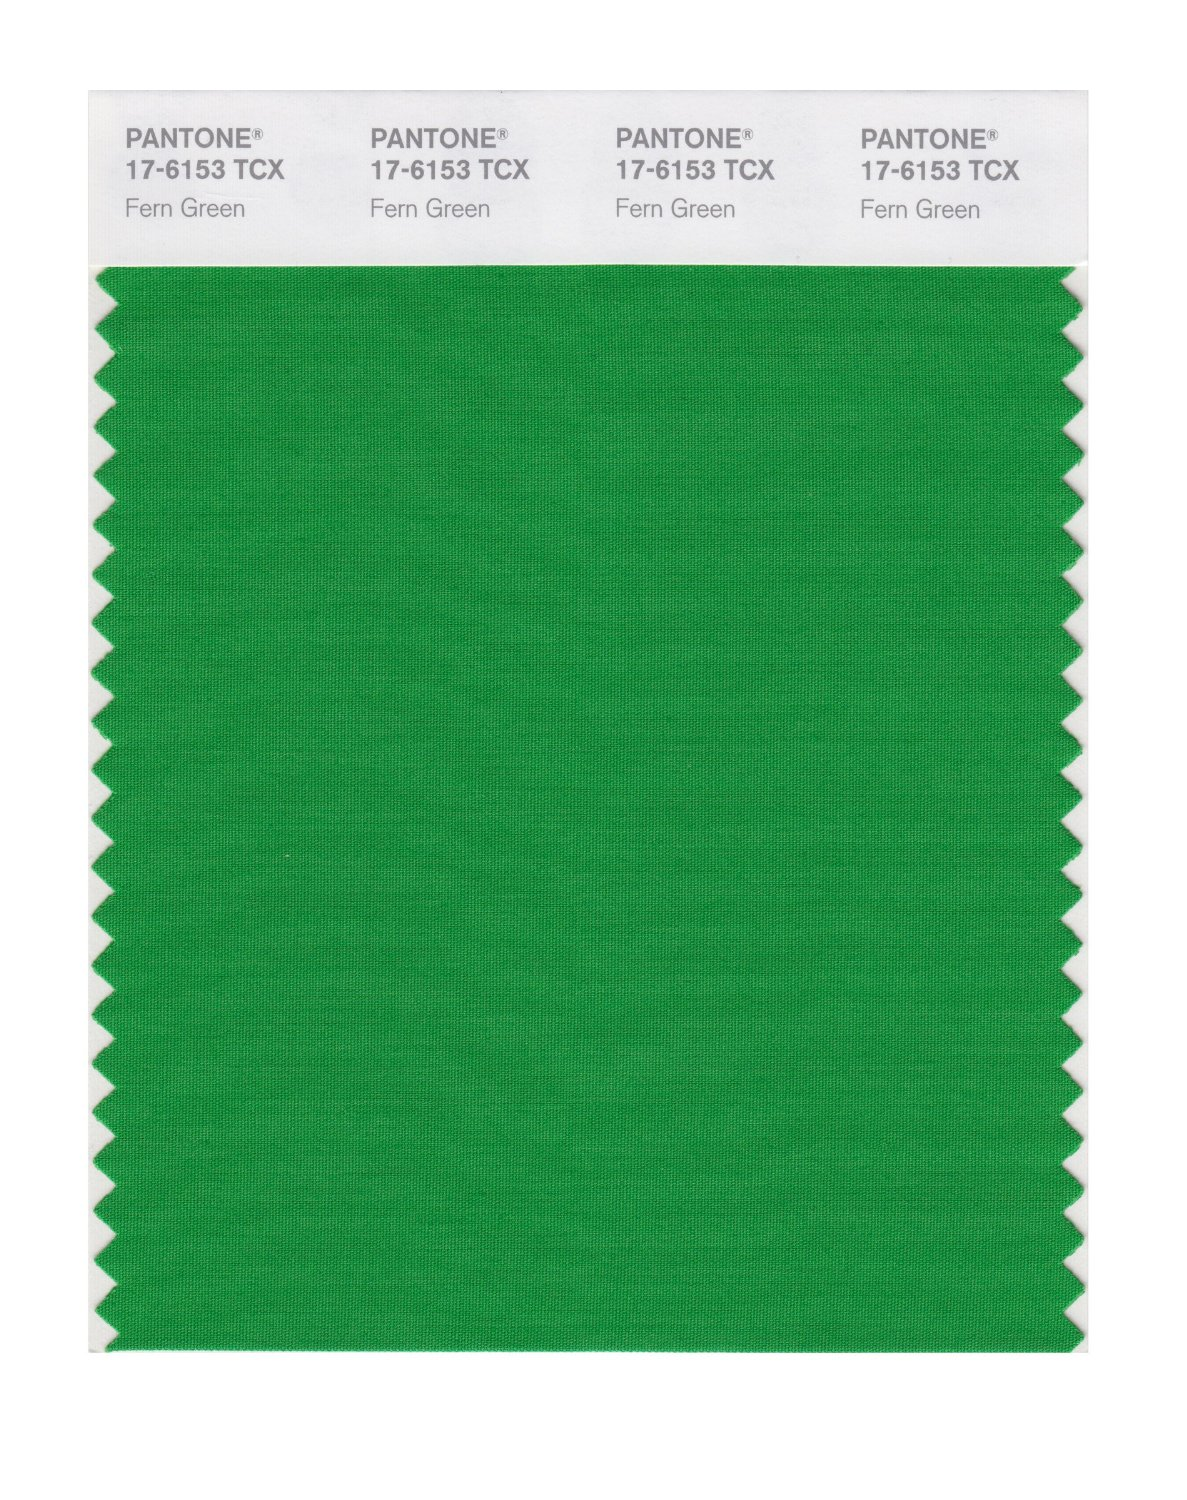 Pantone Smart Swatch 17-6153 Fern Green